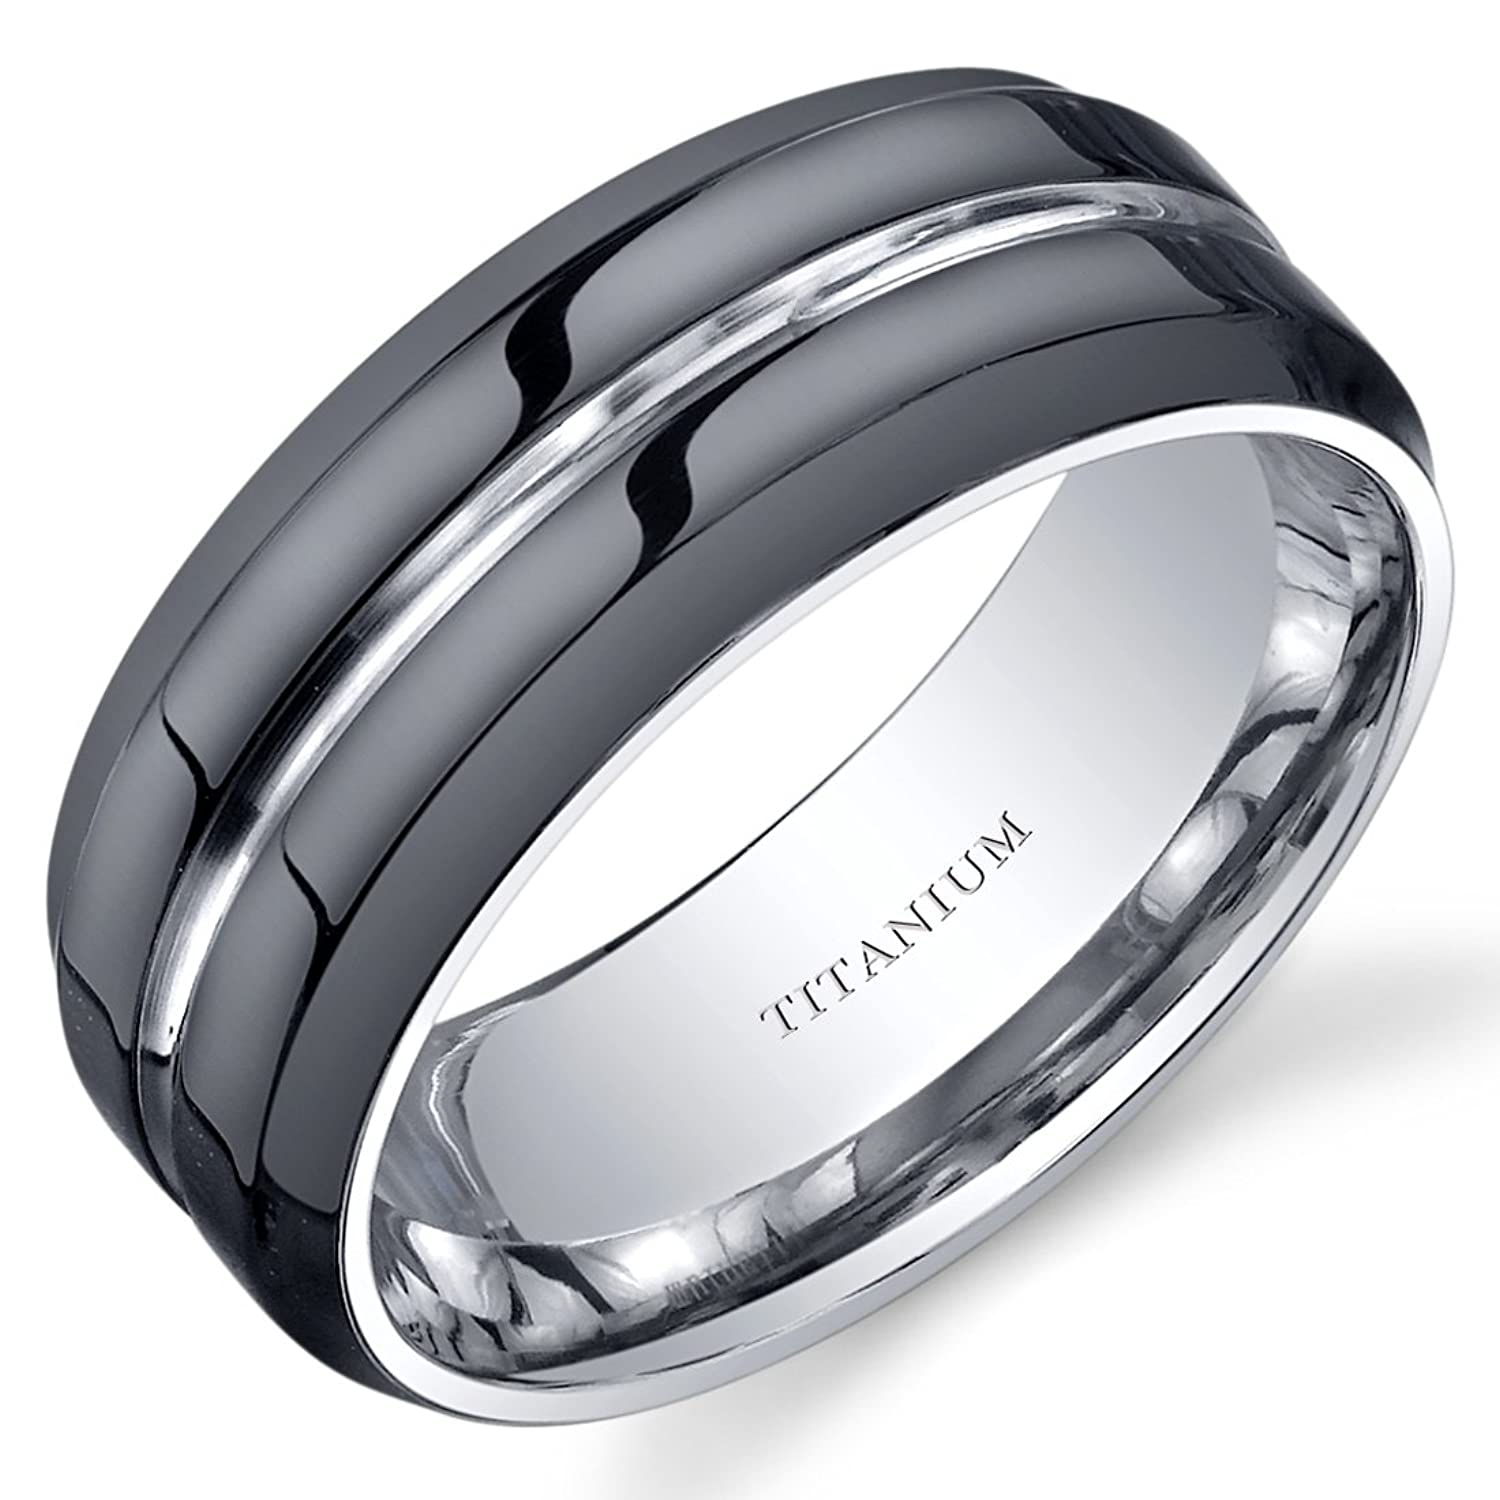 modern style fort fit mens 8mm black titanium wedding band ring